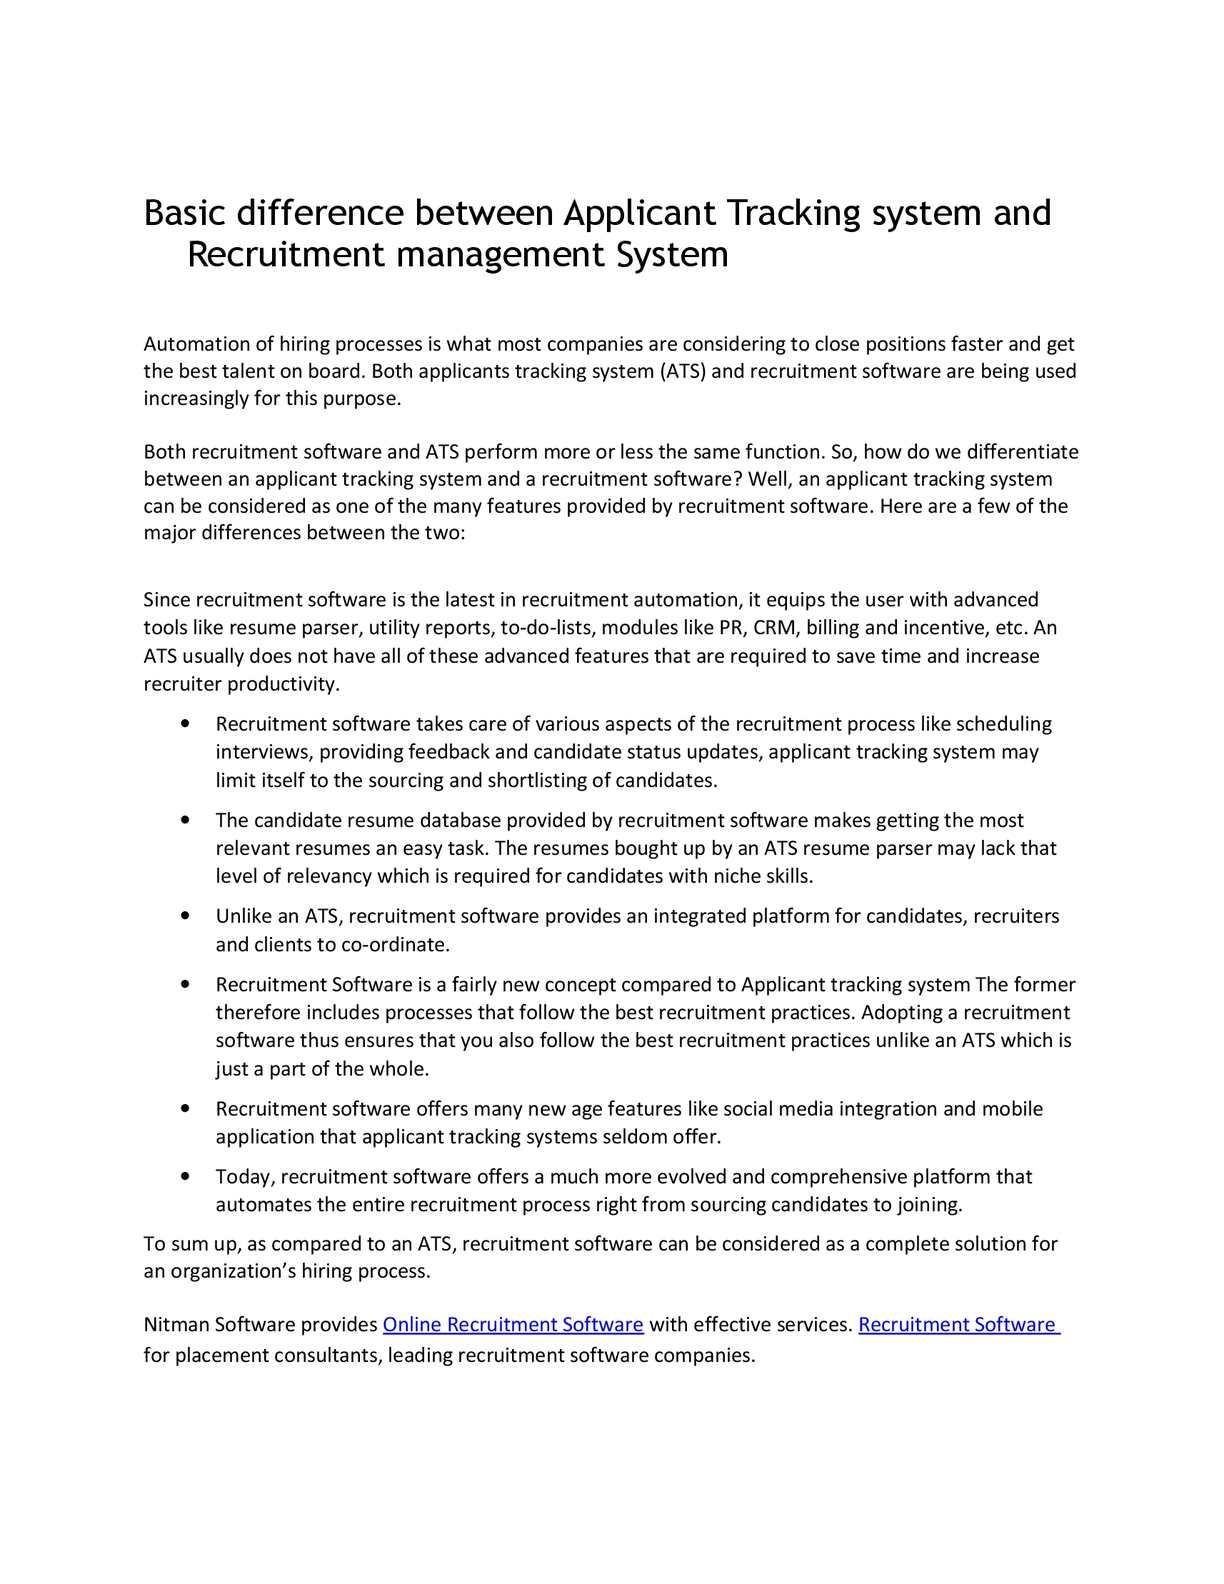 Calameo Basic Difference Between Applicant Tracking System And Recruitment Management System